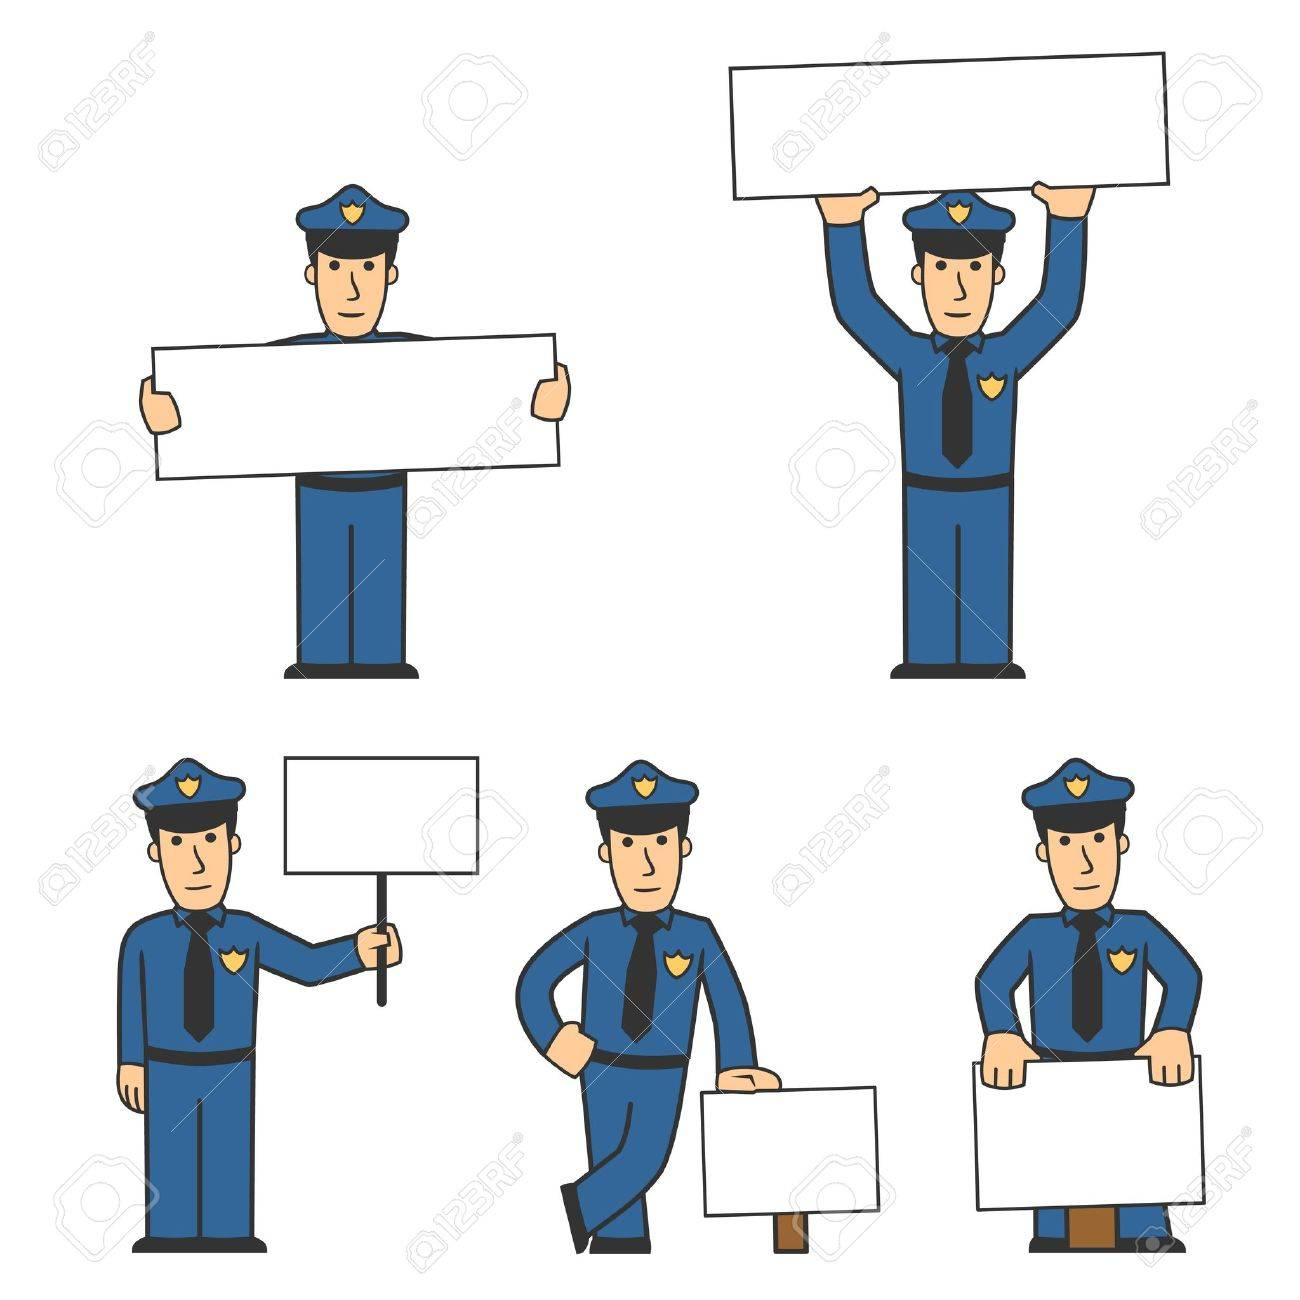 Police character set 02 Stock Photo - 8240704